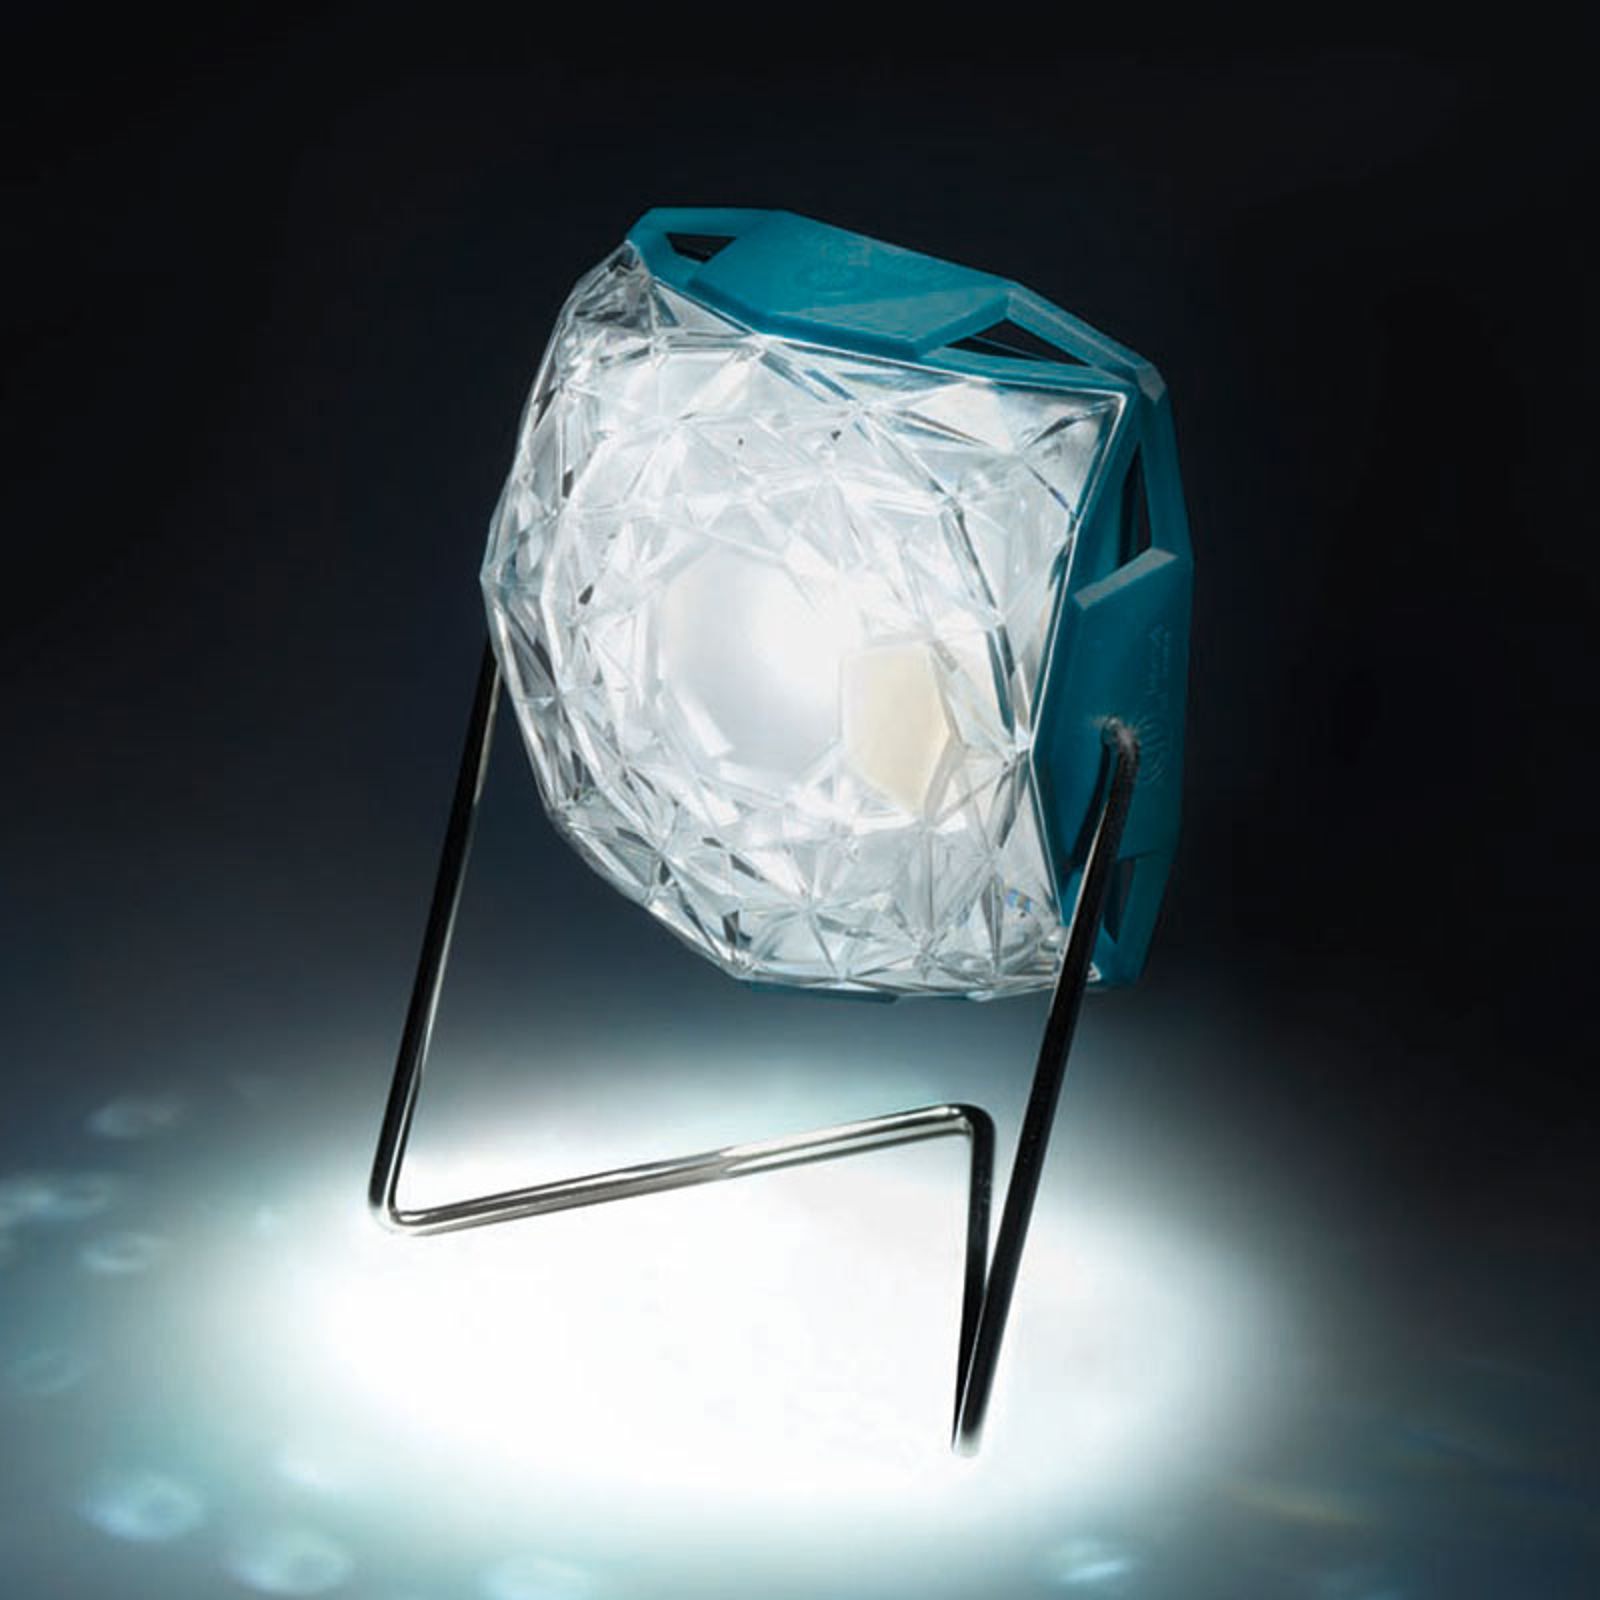 Little Sun Diamond lampa solarna LED ze stojakiem